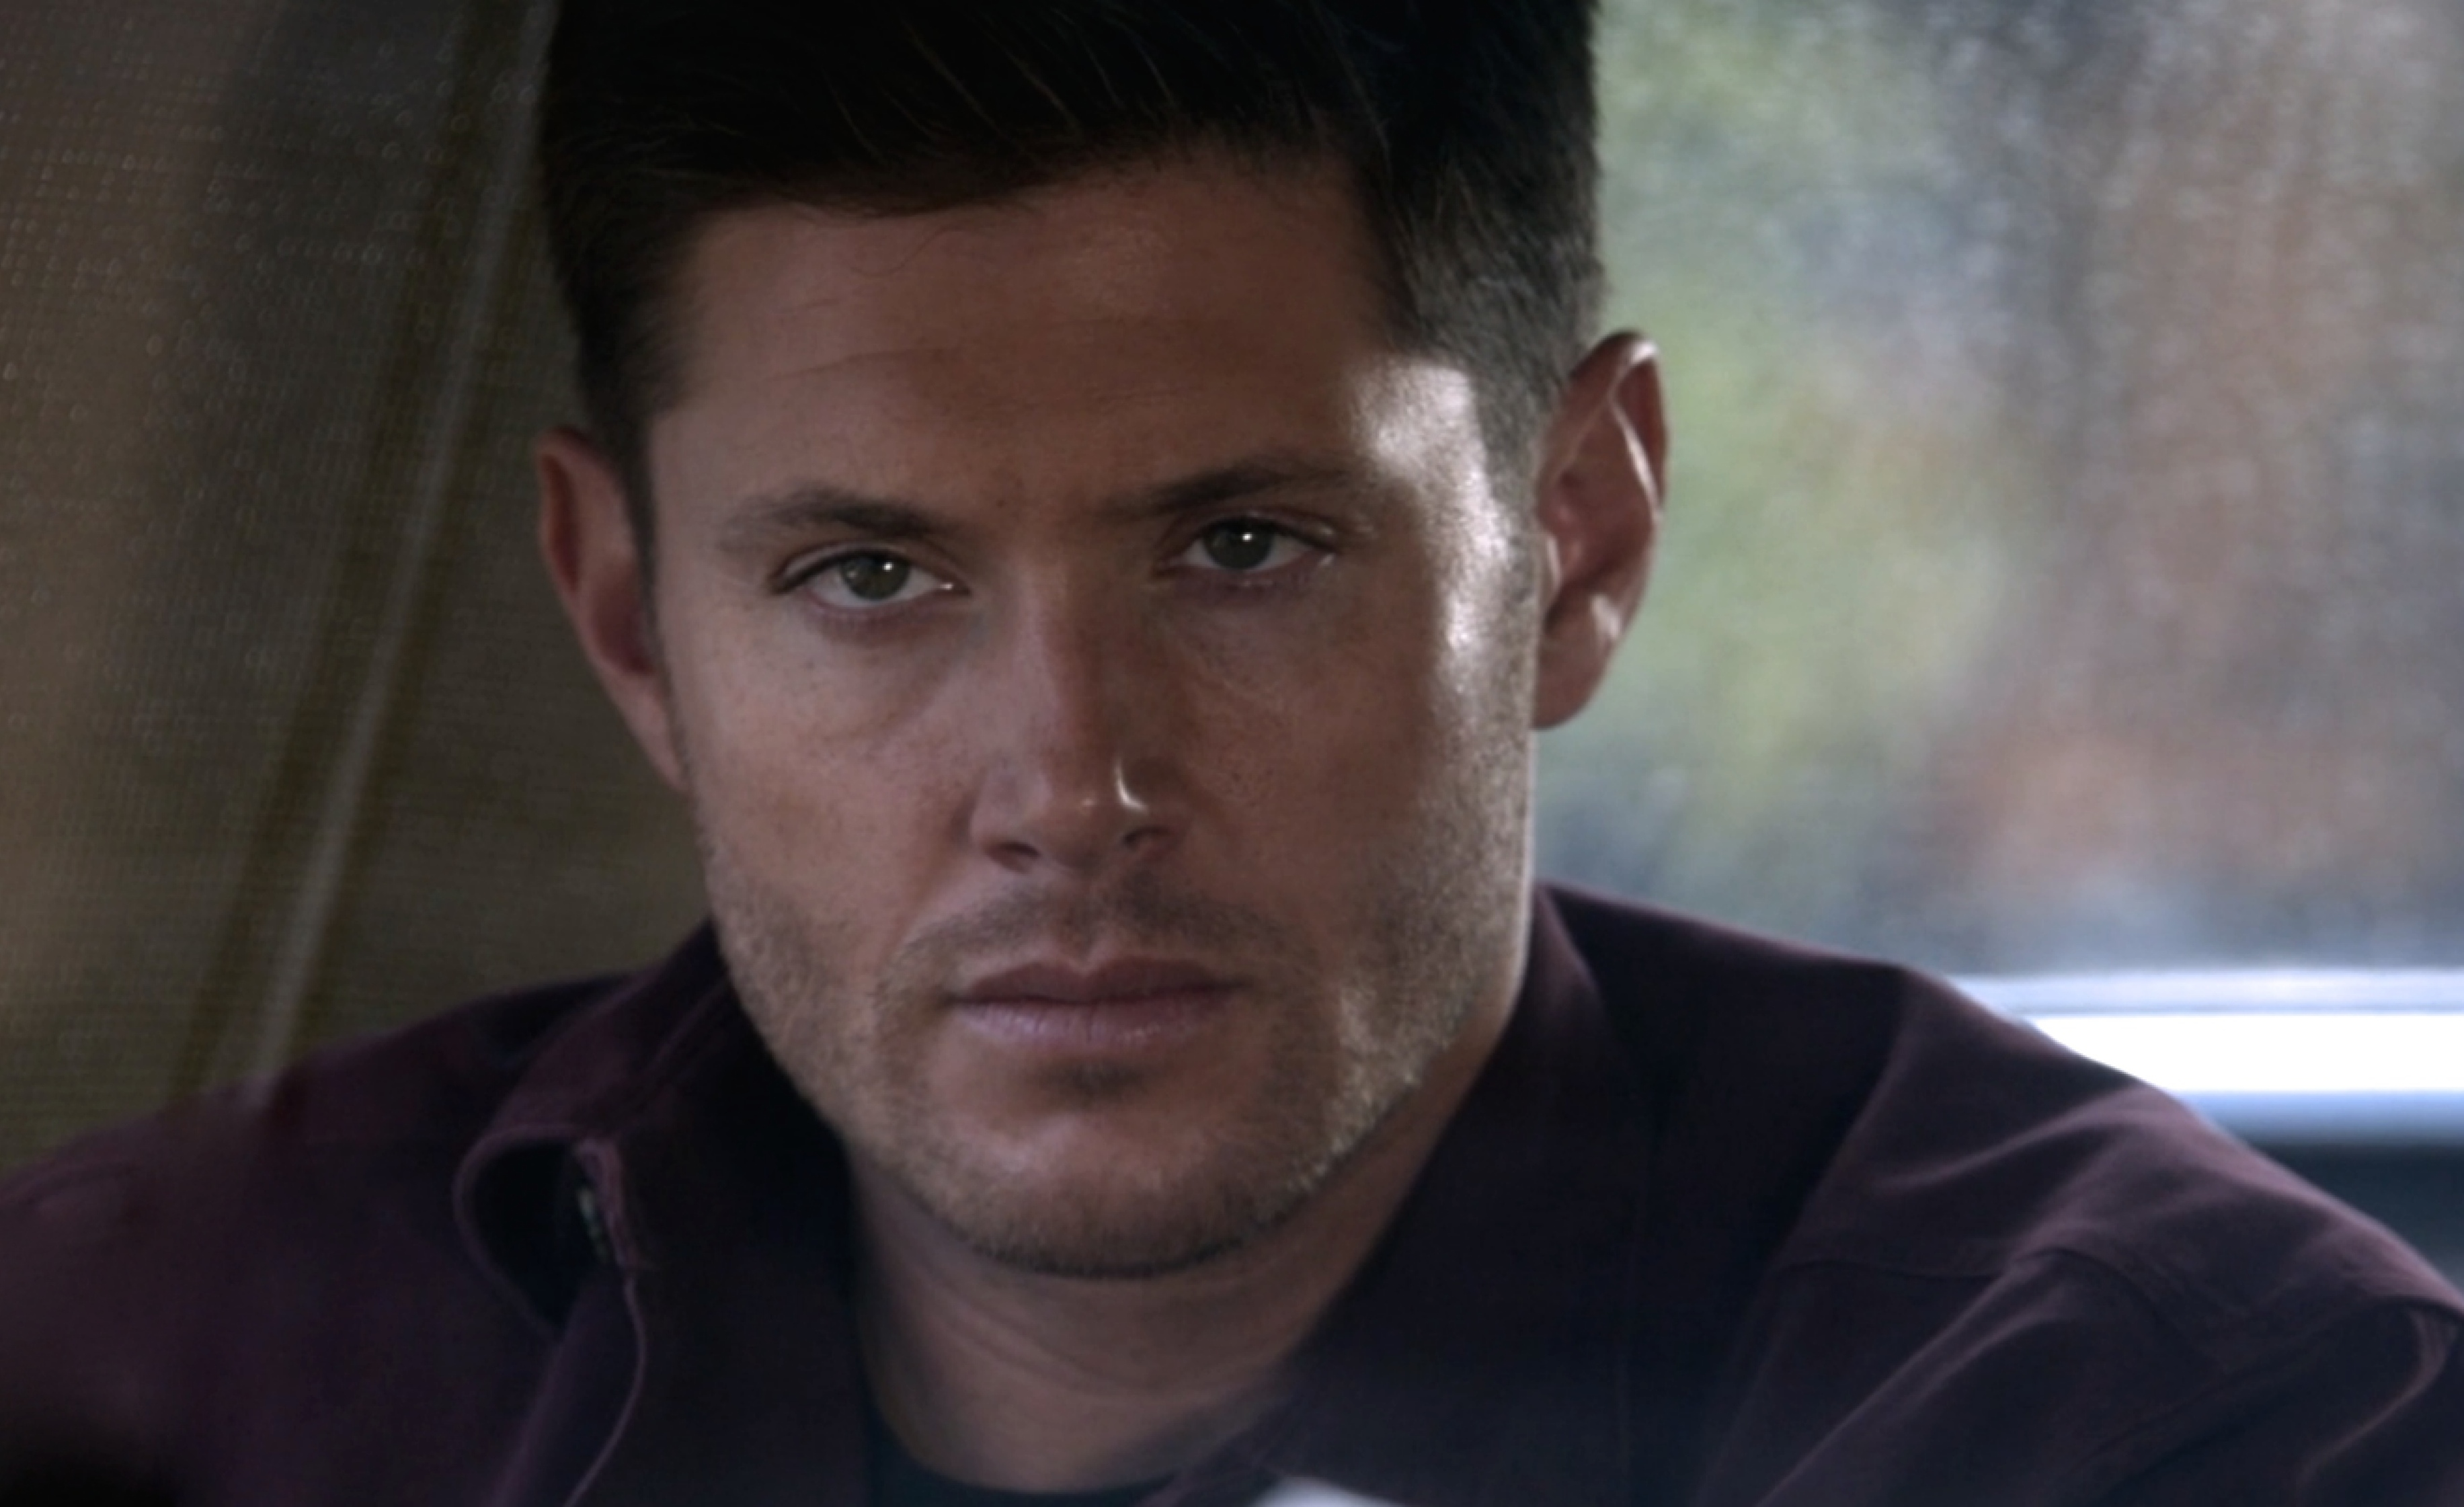 Supernatural S10 Episode 2 Gallery | The Supernatural Fox ...Supernatural